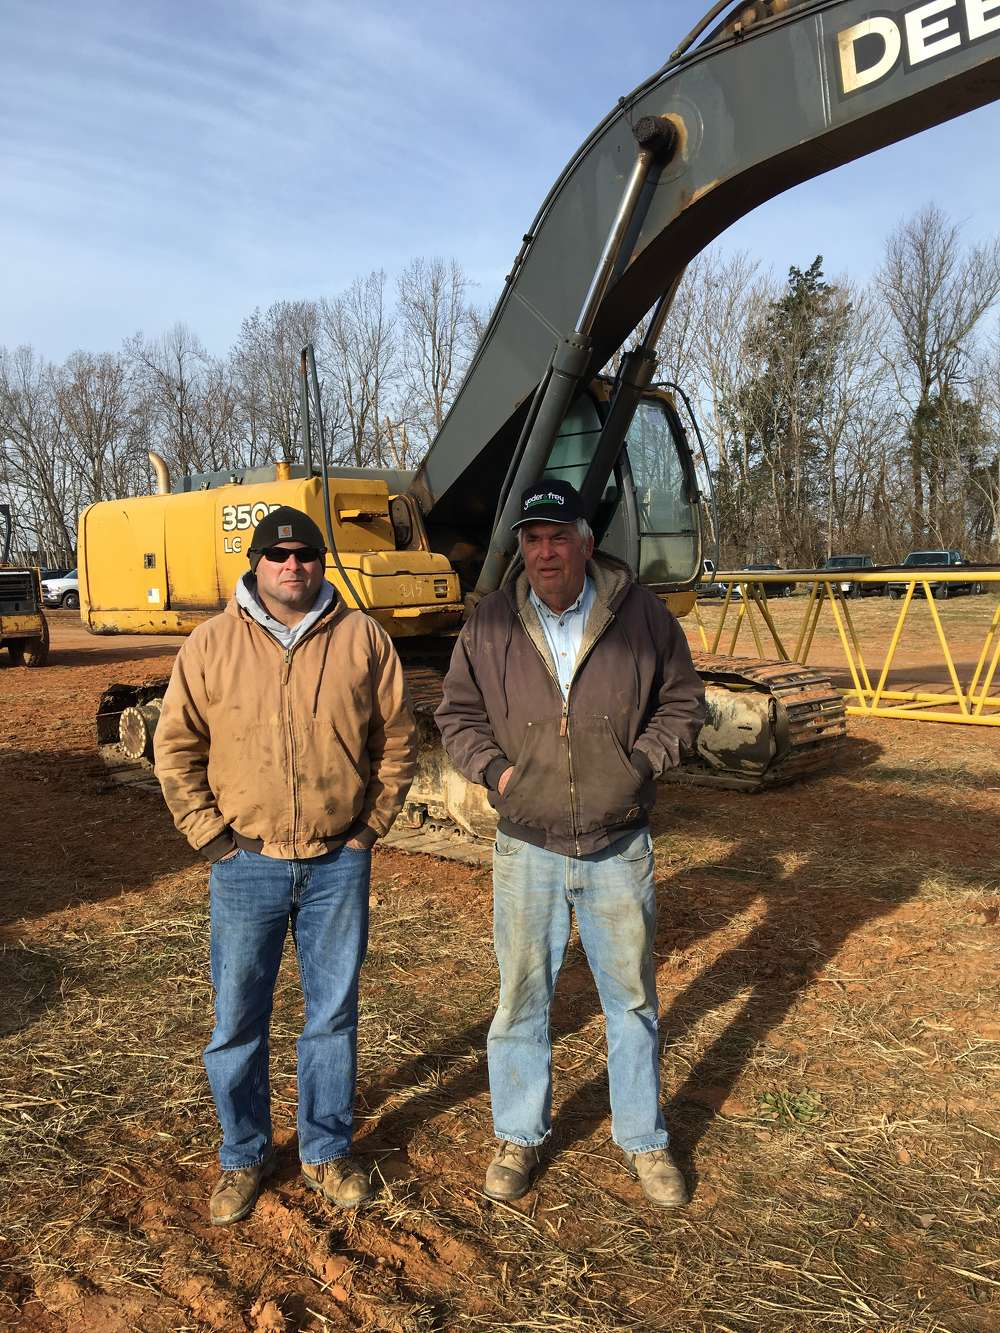 Chad Martin (L) and Kent Coble, both of Coble Sandrock in Libery, N.C., look for an excavator for an upcoming project.